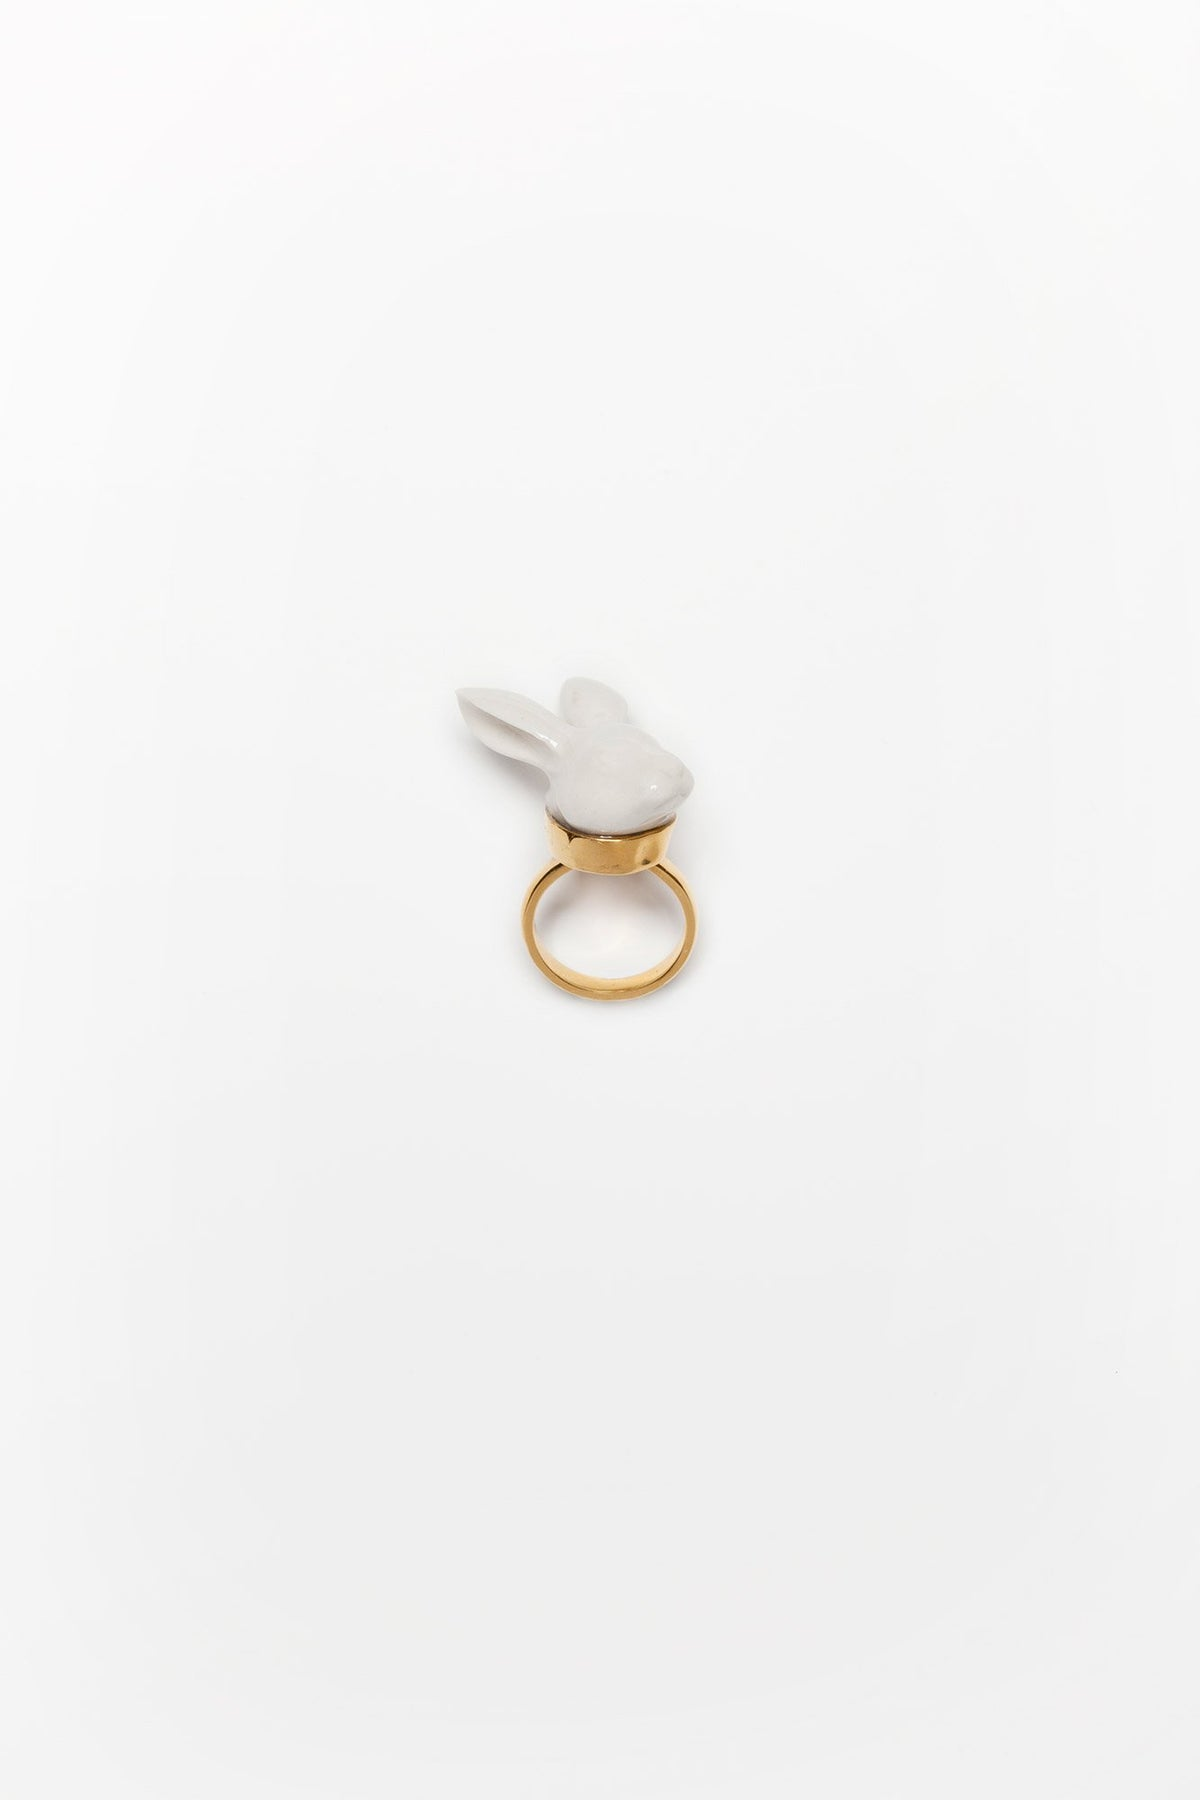 Rabbit Head Adjustable Ring Jewellery Andres Gallardo - der ZEITGEIST